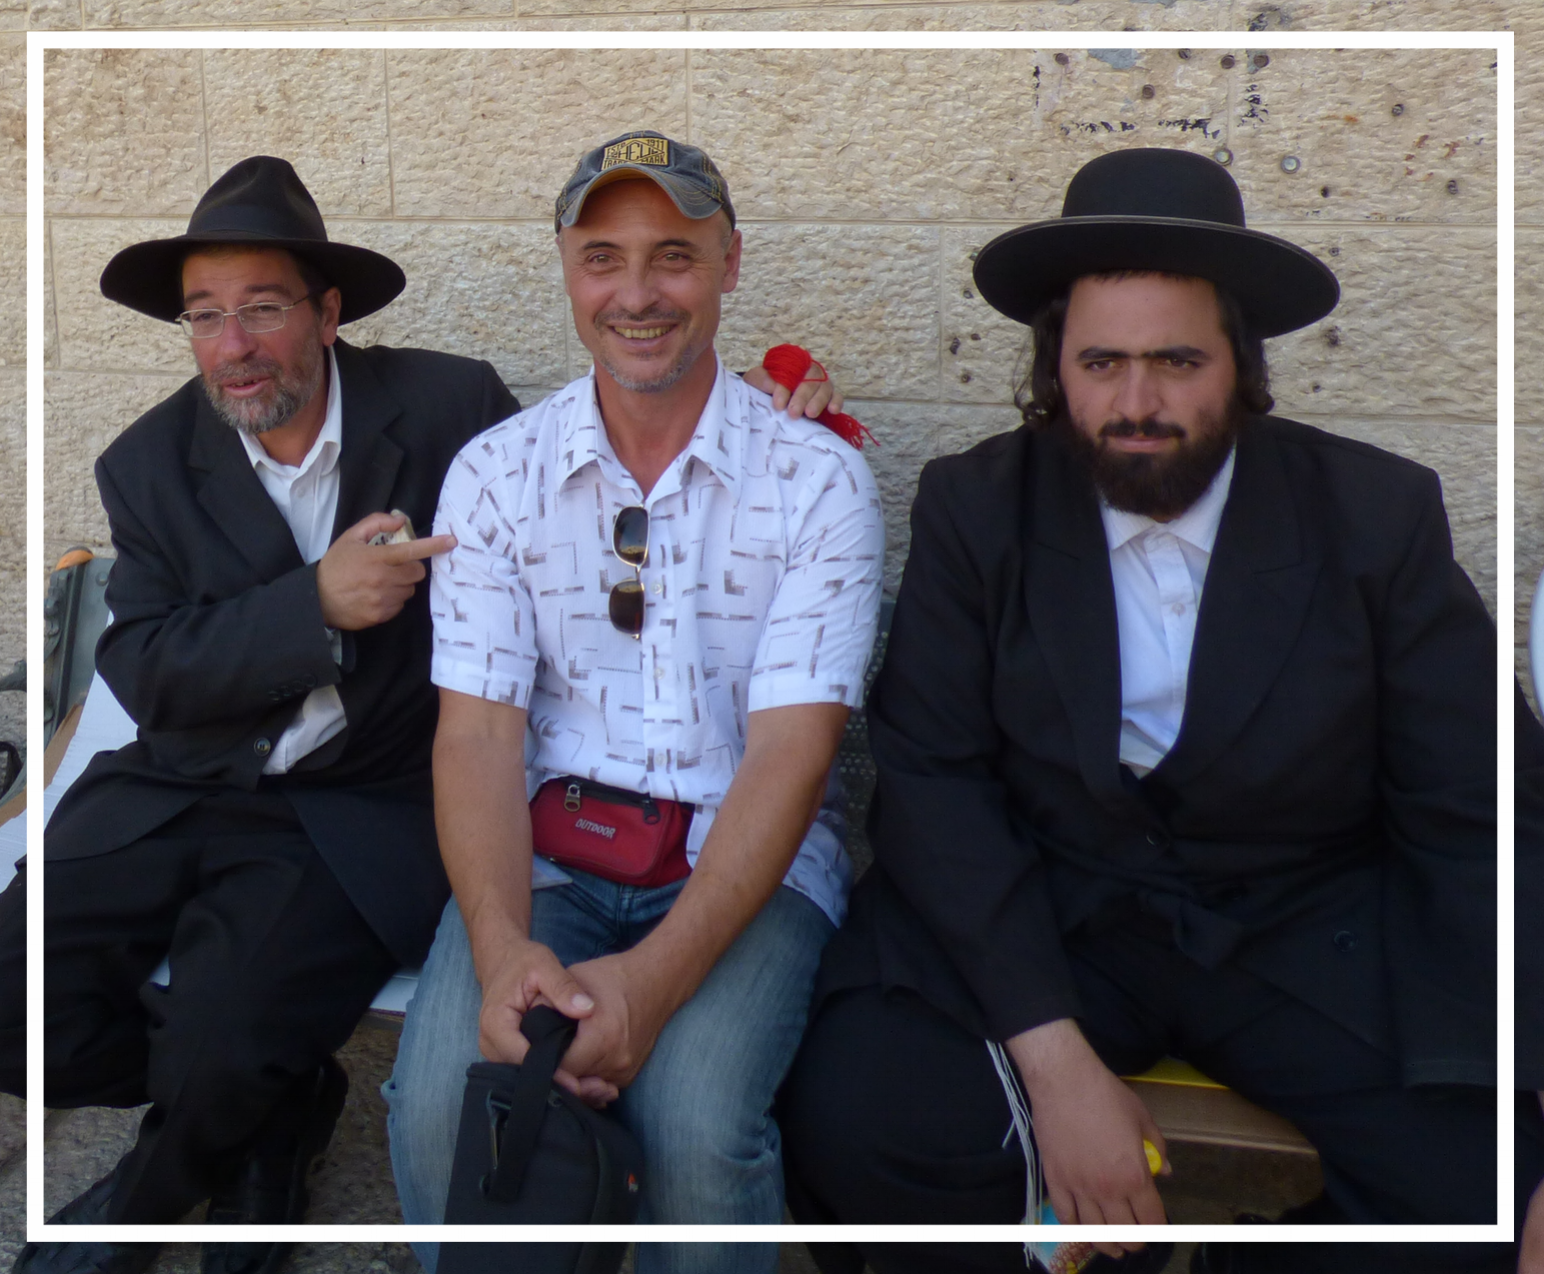 Visiting with the Orthodox Jews in Jerusalem